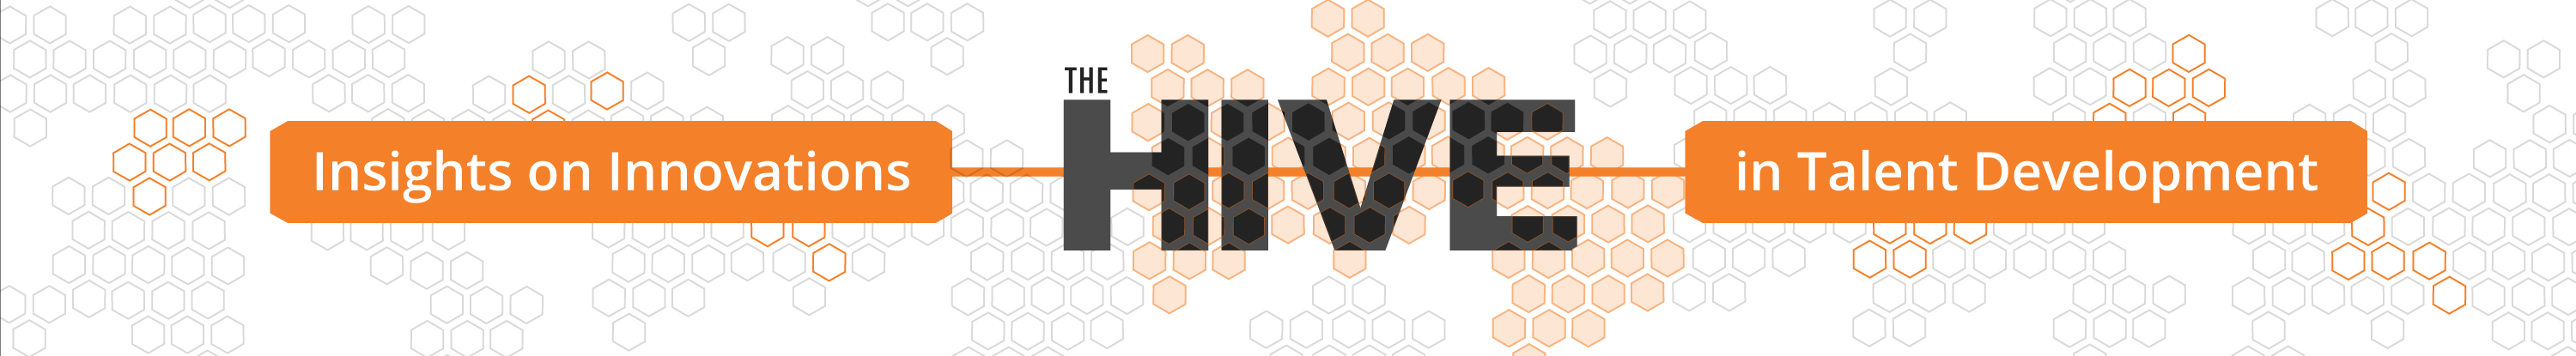 Business Learning Strategy and Insights from the HIVE podcast